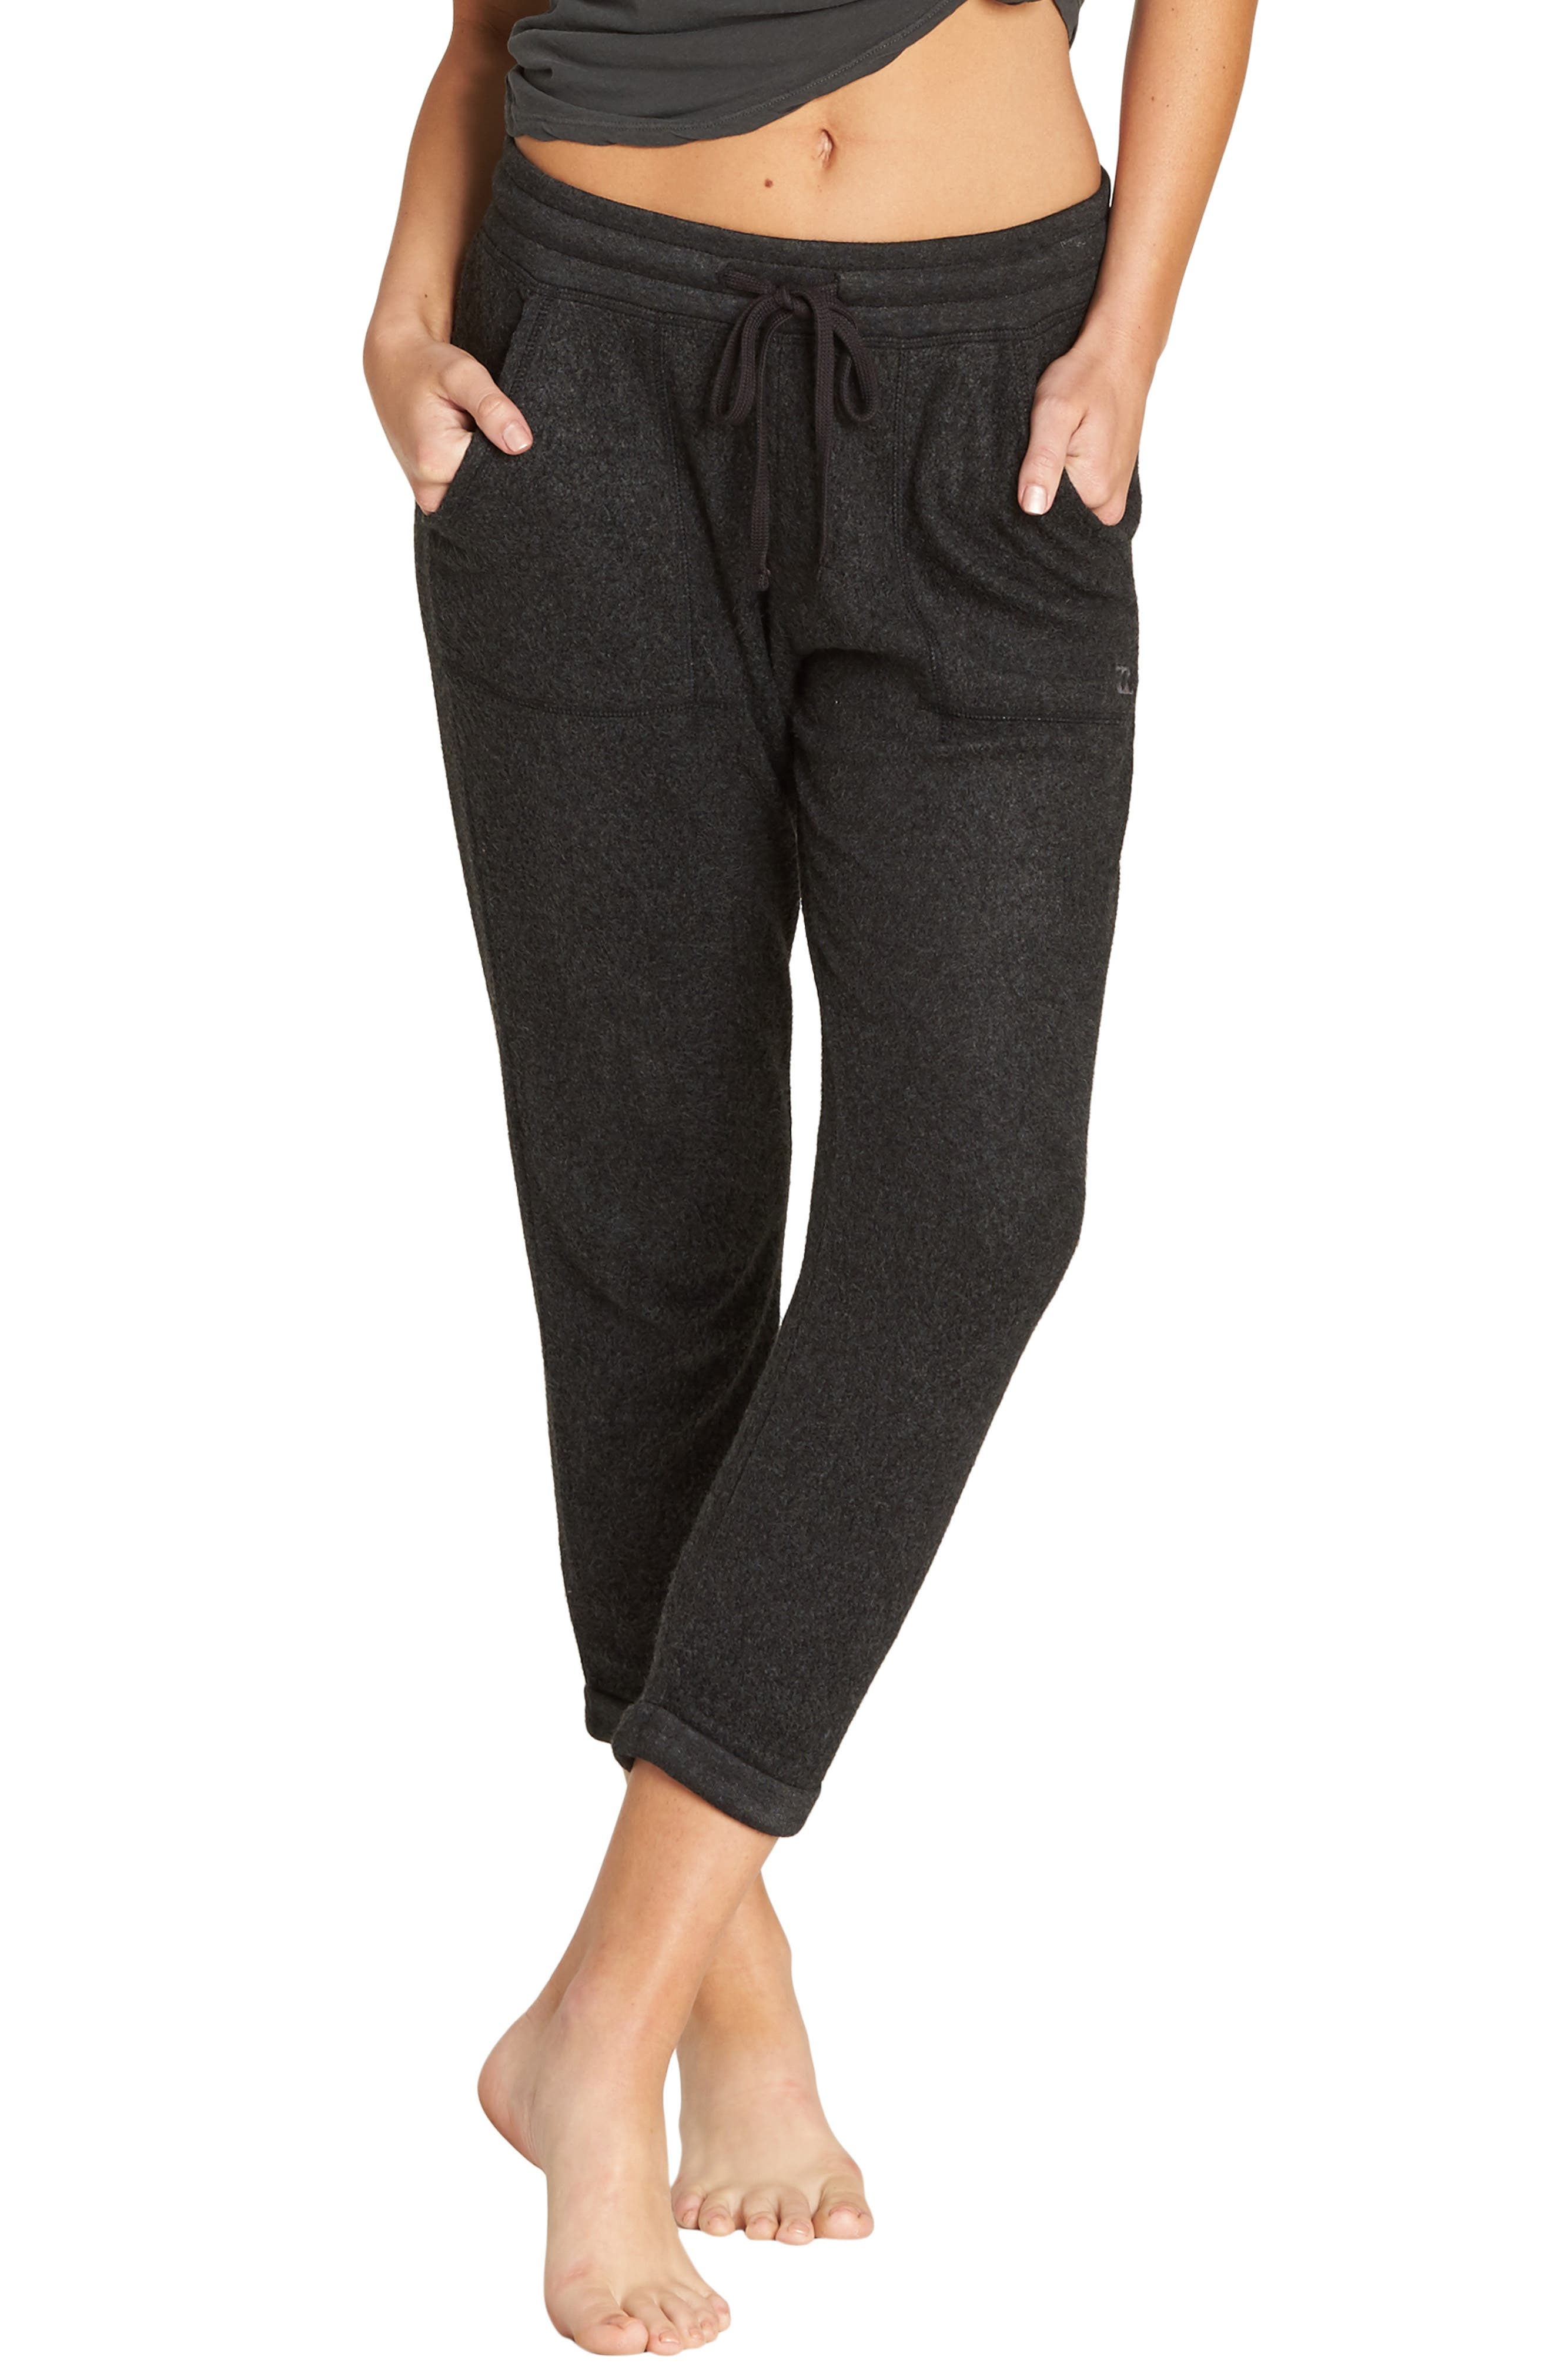 BILLABONG, So Cozy Crop Fleece Pants, Main thumbnail 1, color, 020